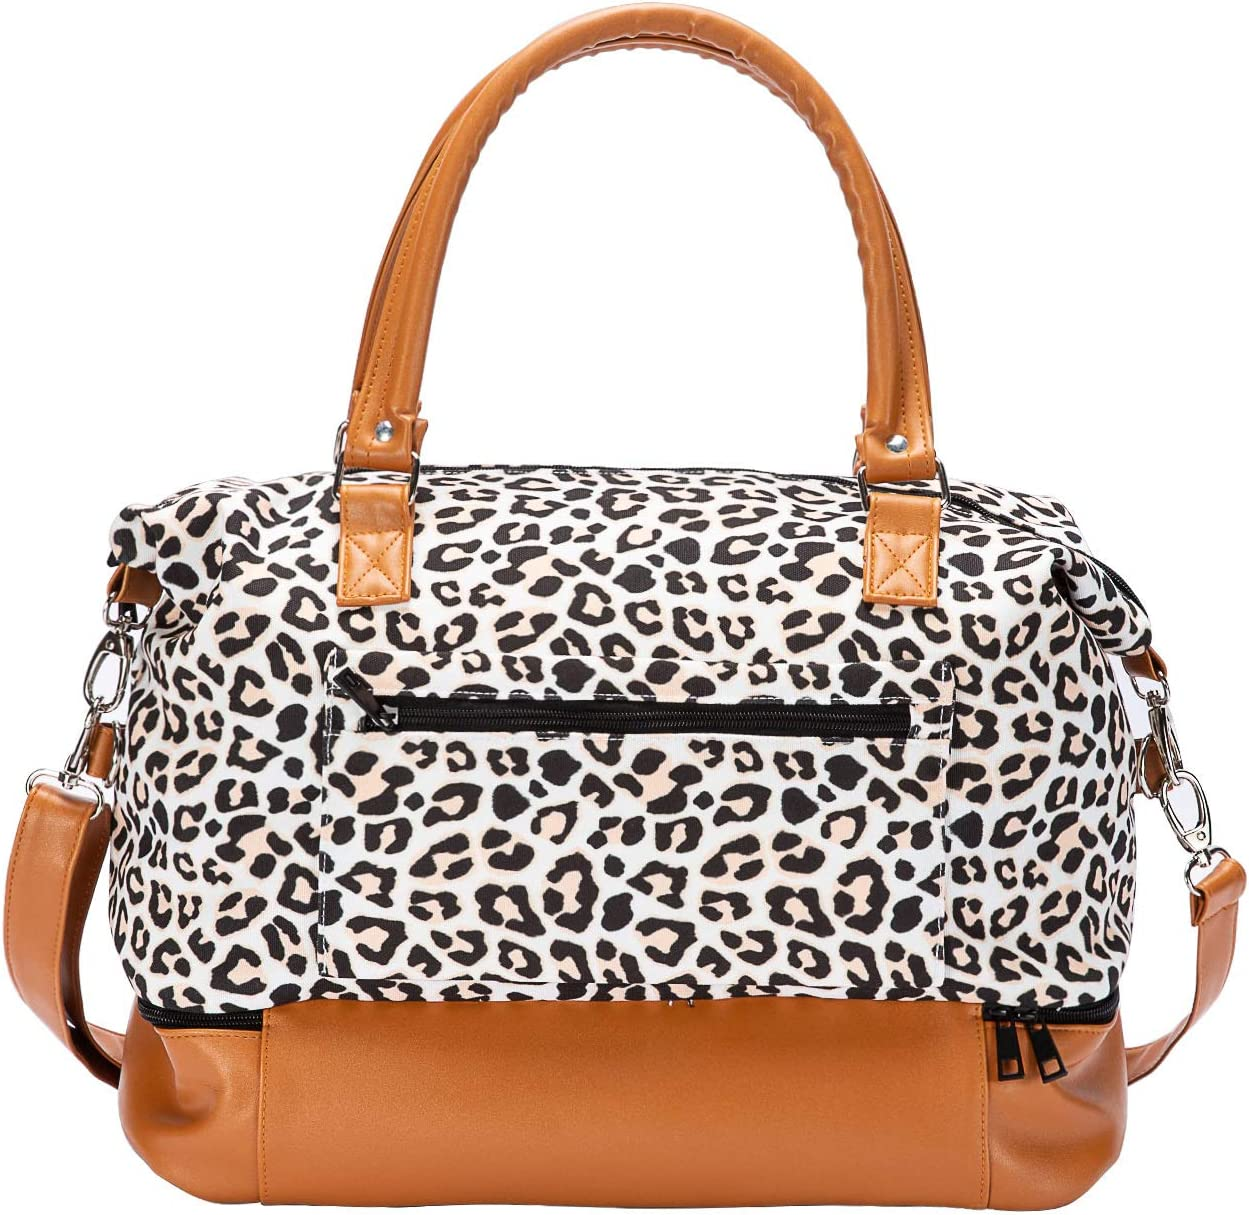 Women Travel Duffle Bag Canvas Carry On Tote Weekender Overnight Bag with PU Leather Shoulder Strap and Shoe Compartment Leopard